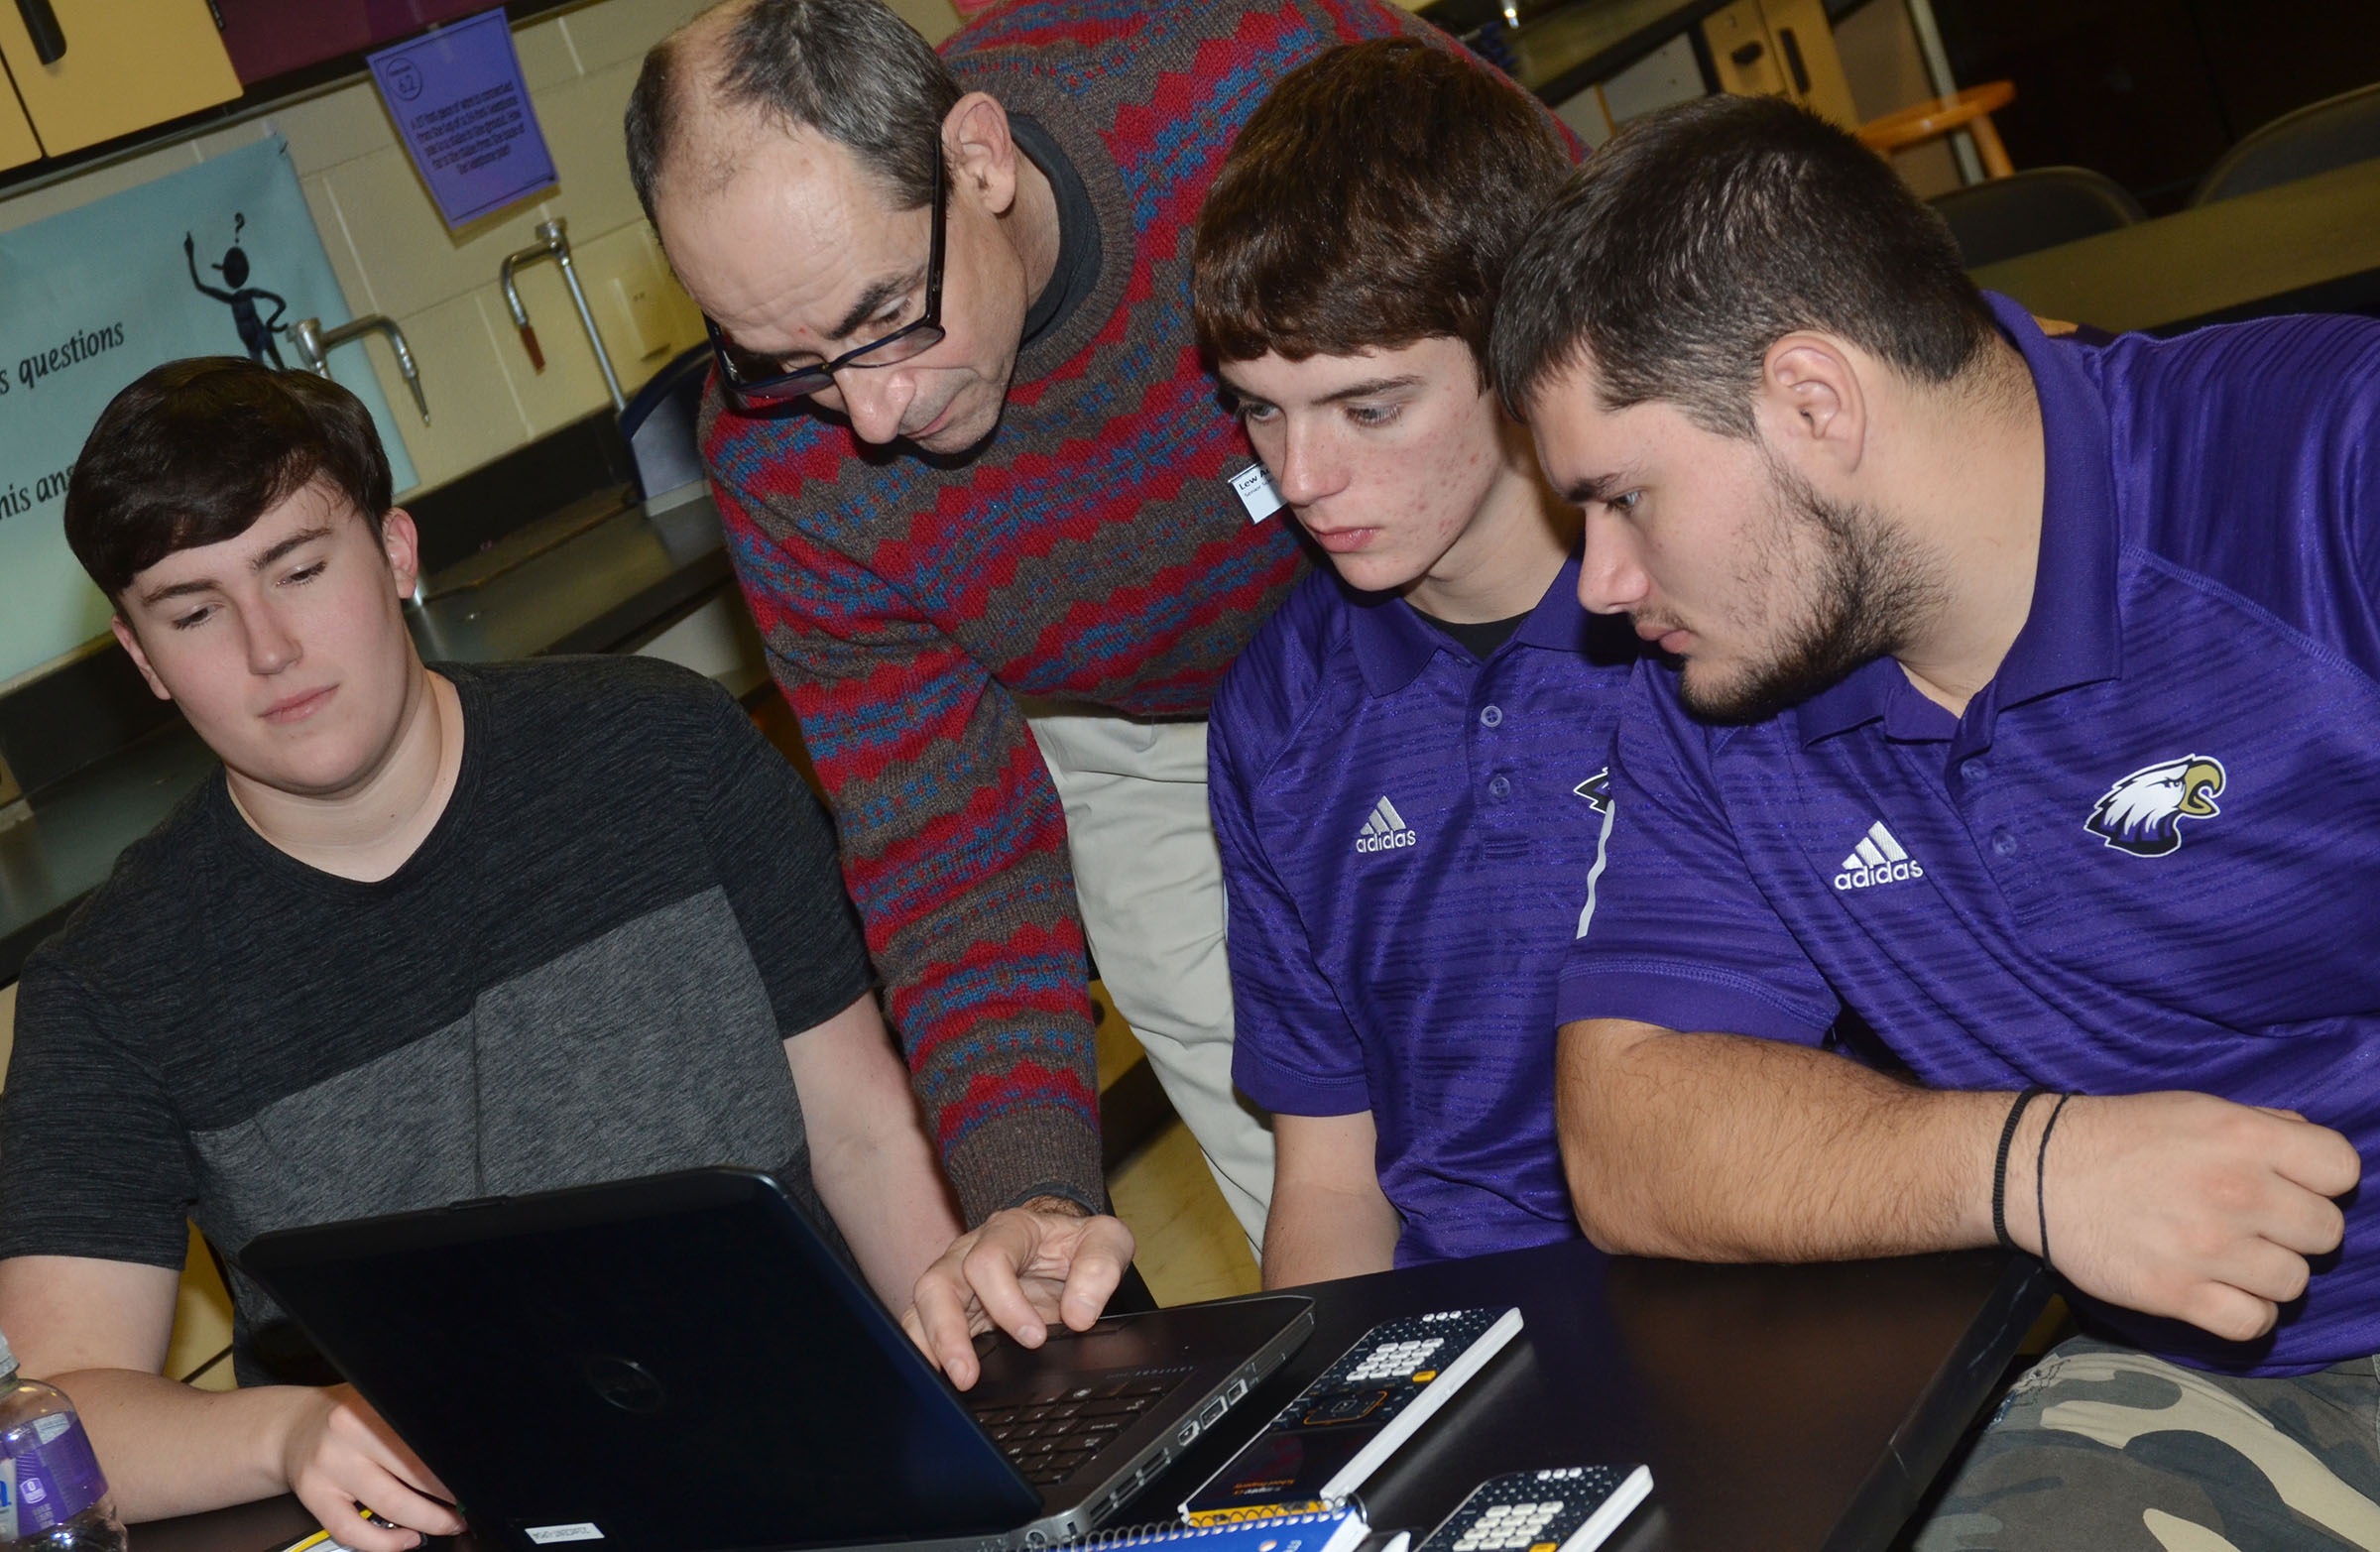 Lew Acampora, senior science director with AdvanceKentucky, works with CHS seniors, from left, Zack Settle, Murphy Lamb and Logan Brown as they learn the Logger Pro software.